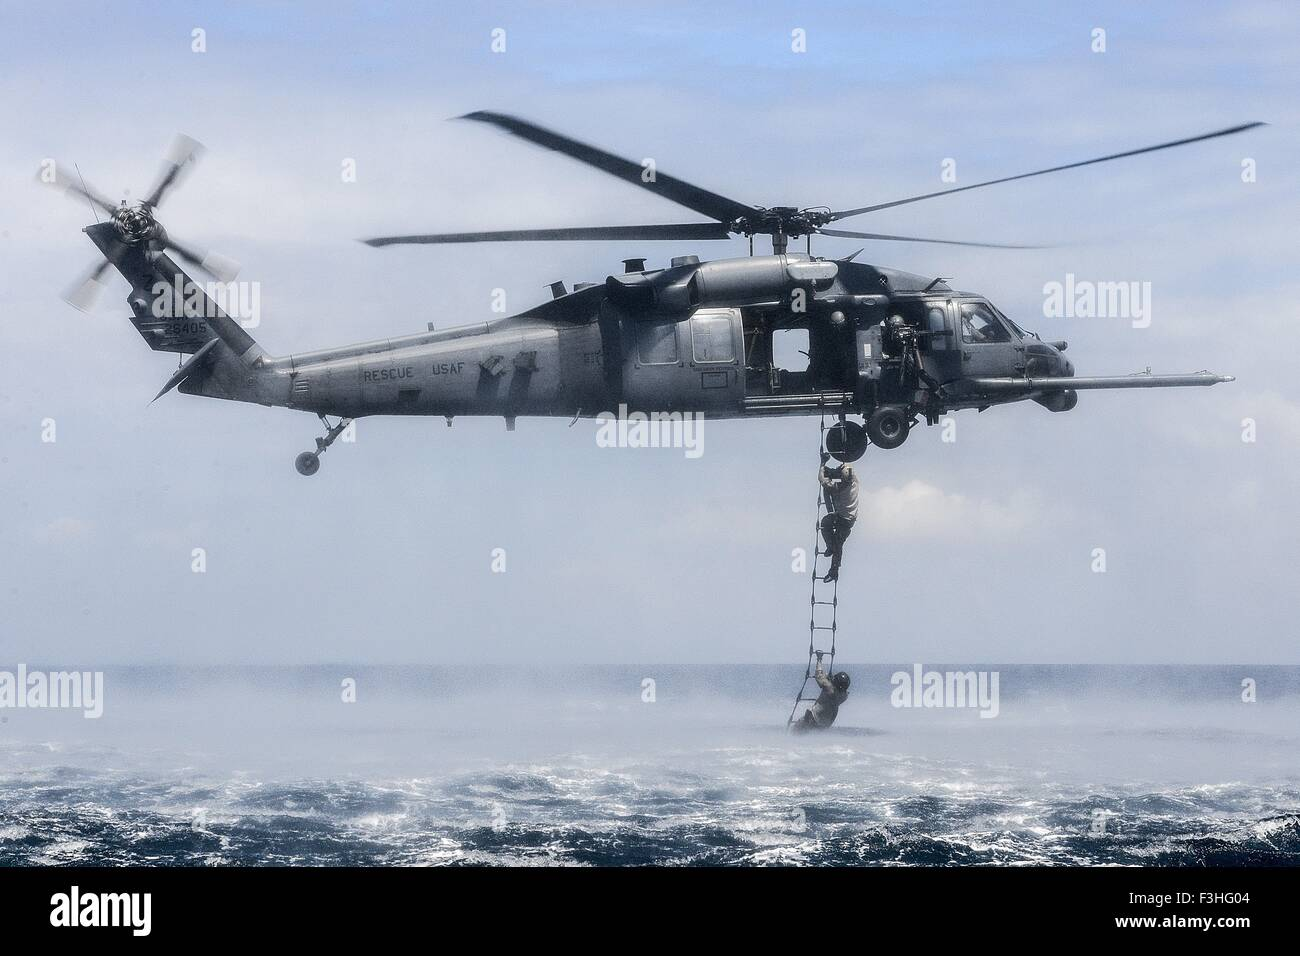 U.S. Air Force special forces rescue commandos jump from a HH-60G Pave Hawk helicopter into the ocean during amphibious - Stock Image